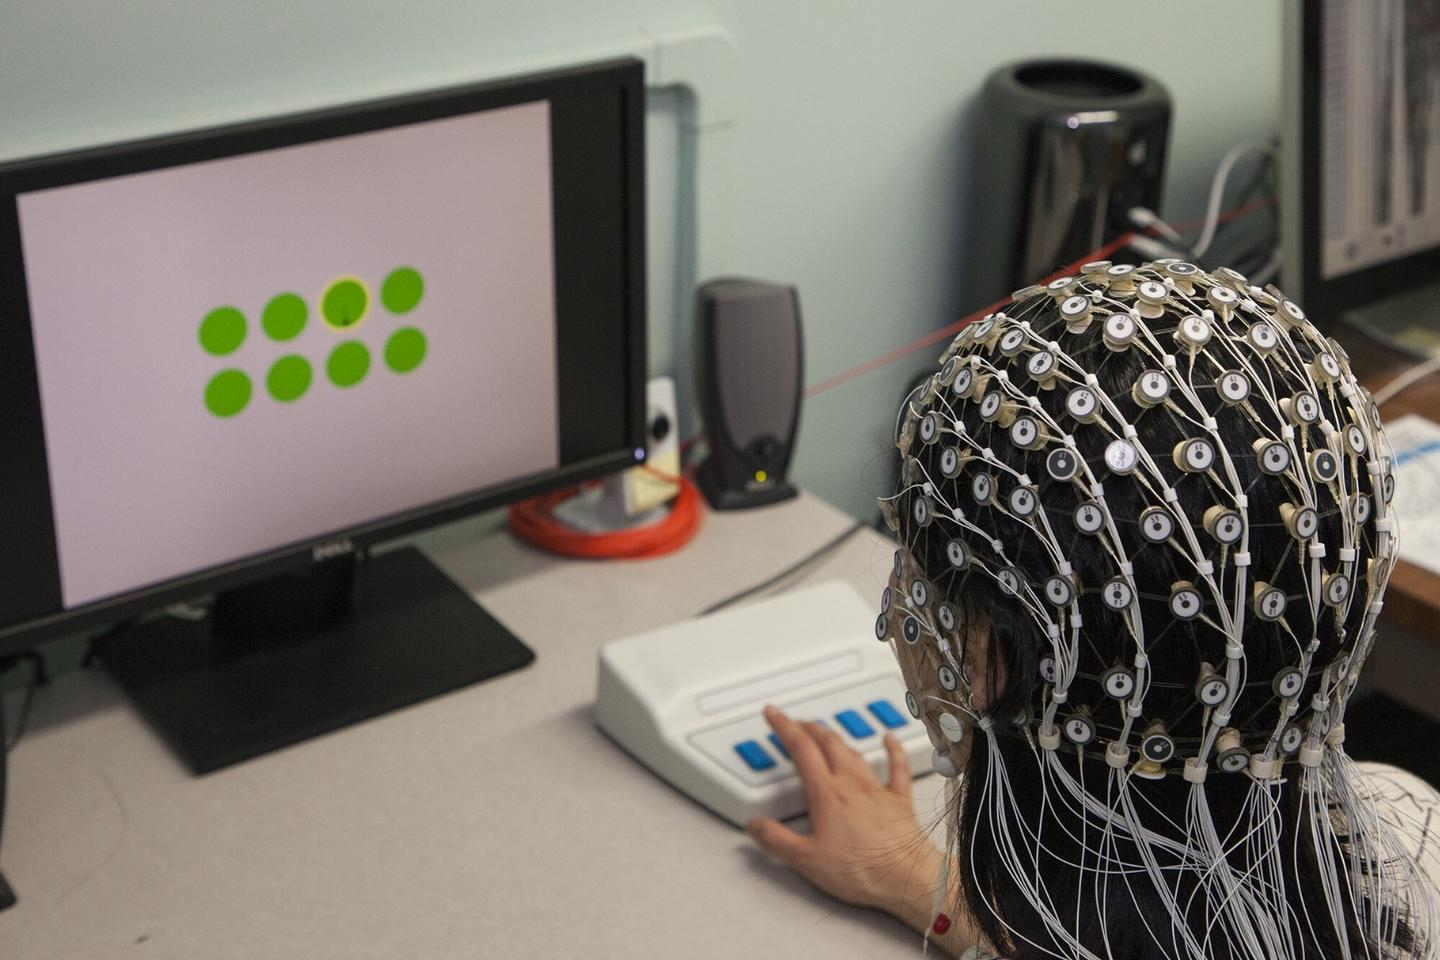 A subject undergoing a boredom induction task while having their brainwaves monitored